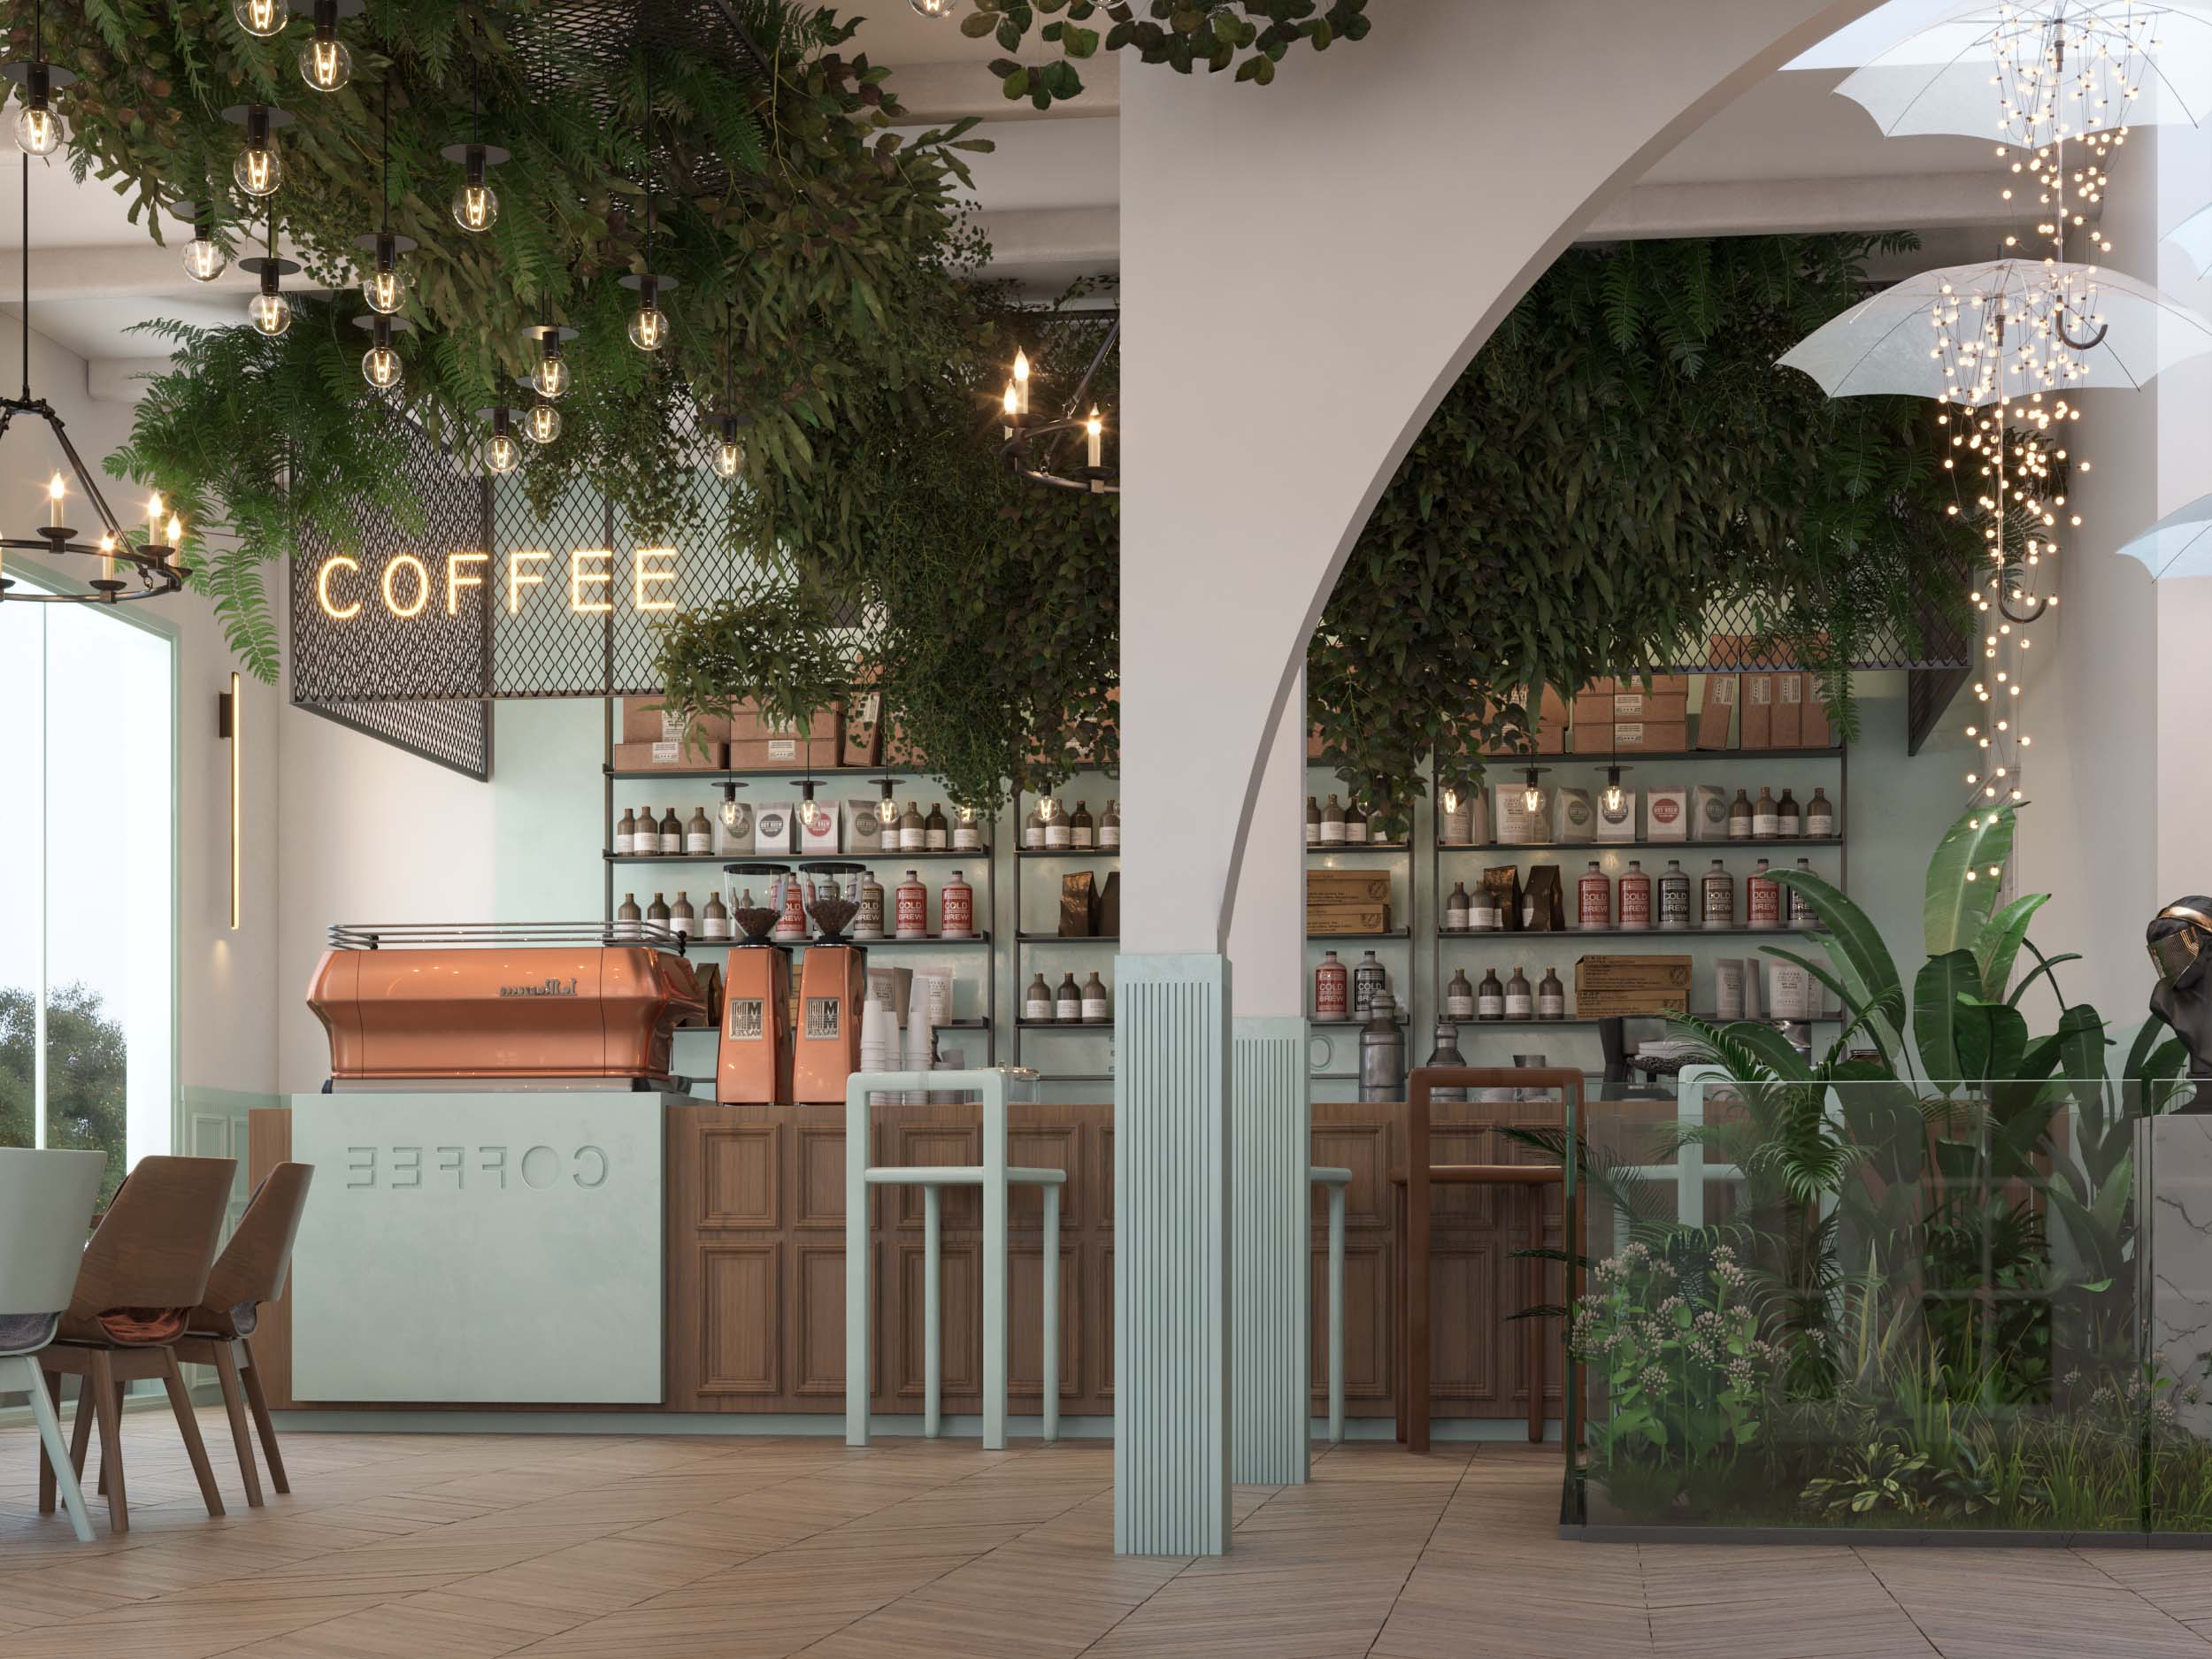 CAFE DESIGN BY HRarchZ - BAR DESIGN - COFFEE- AMERICAN STYLE